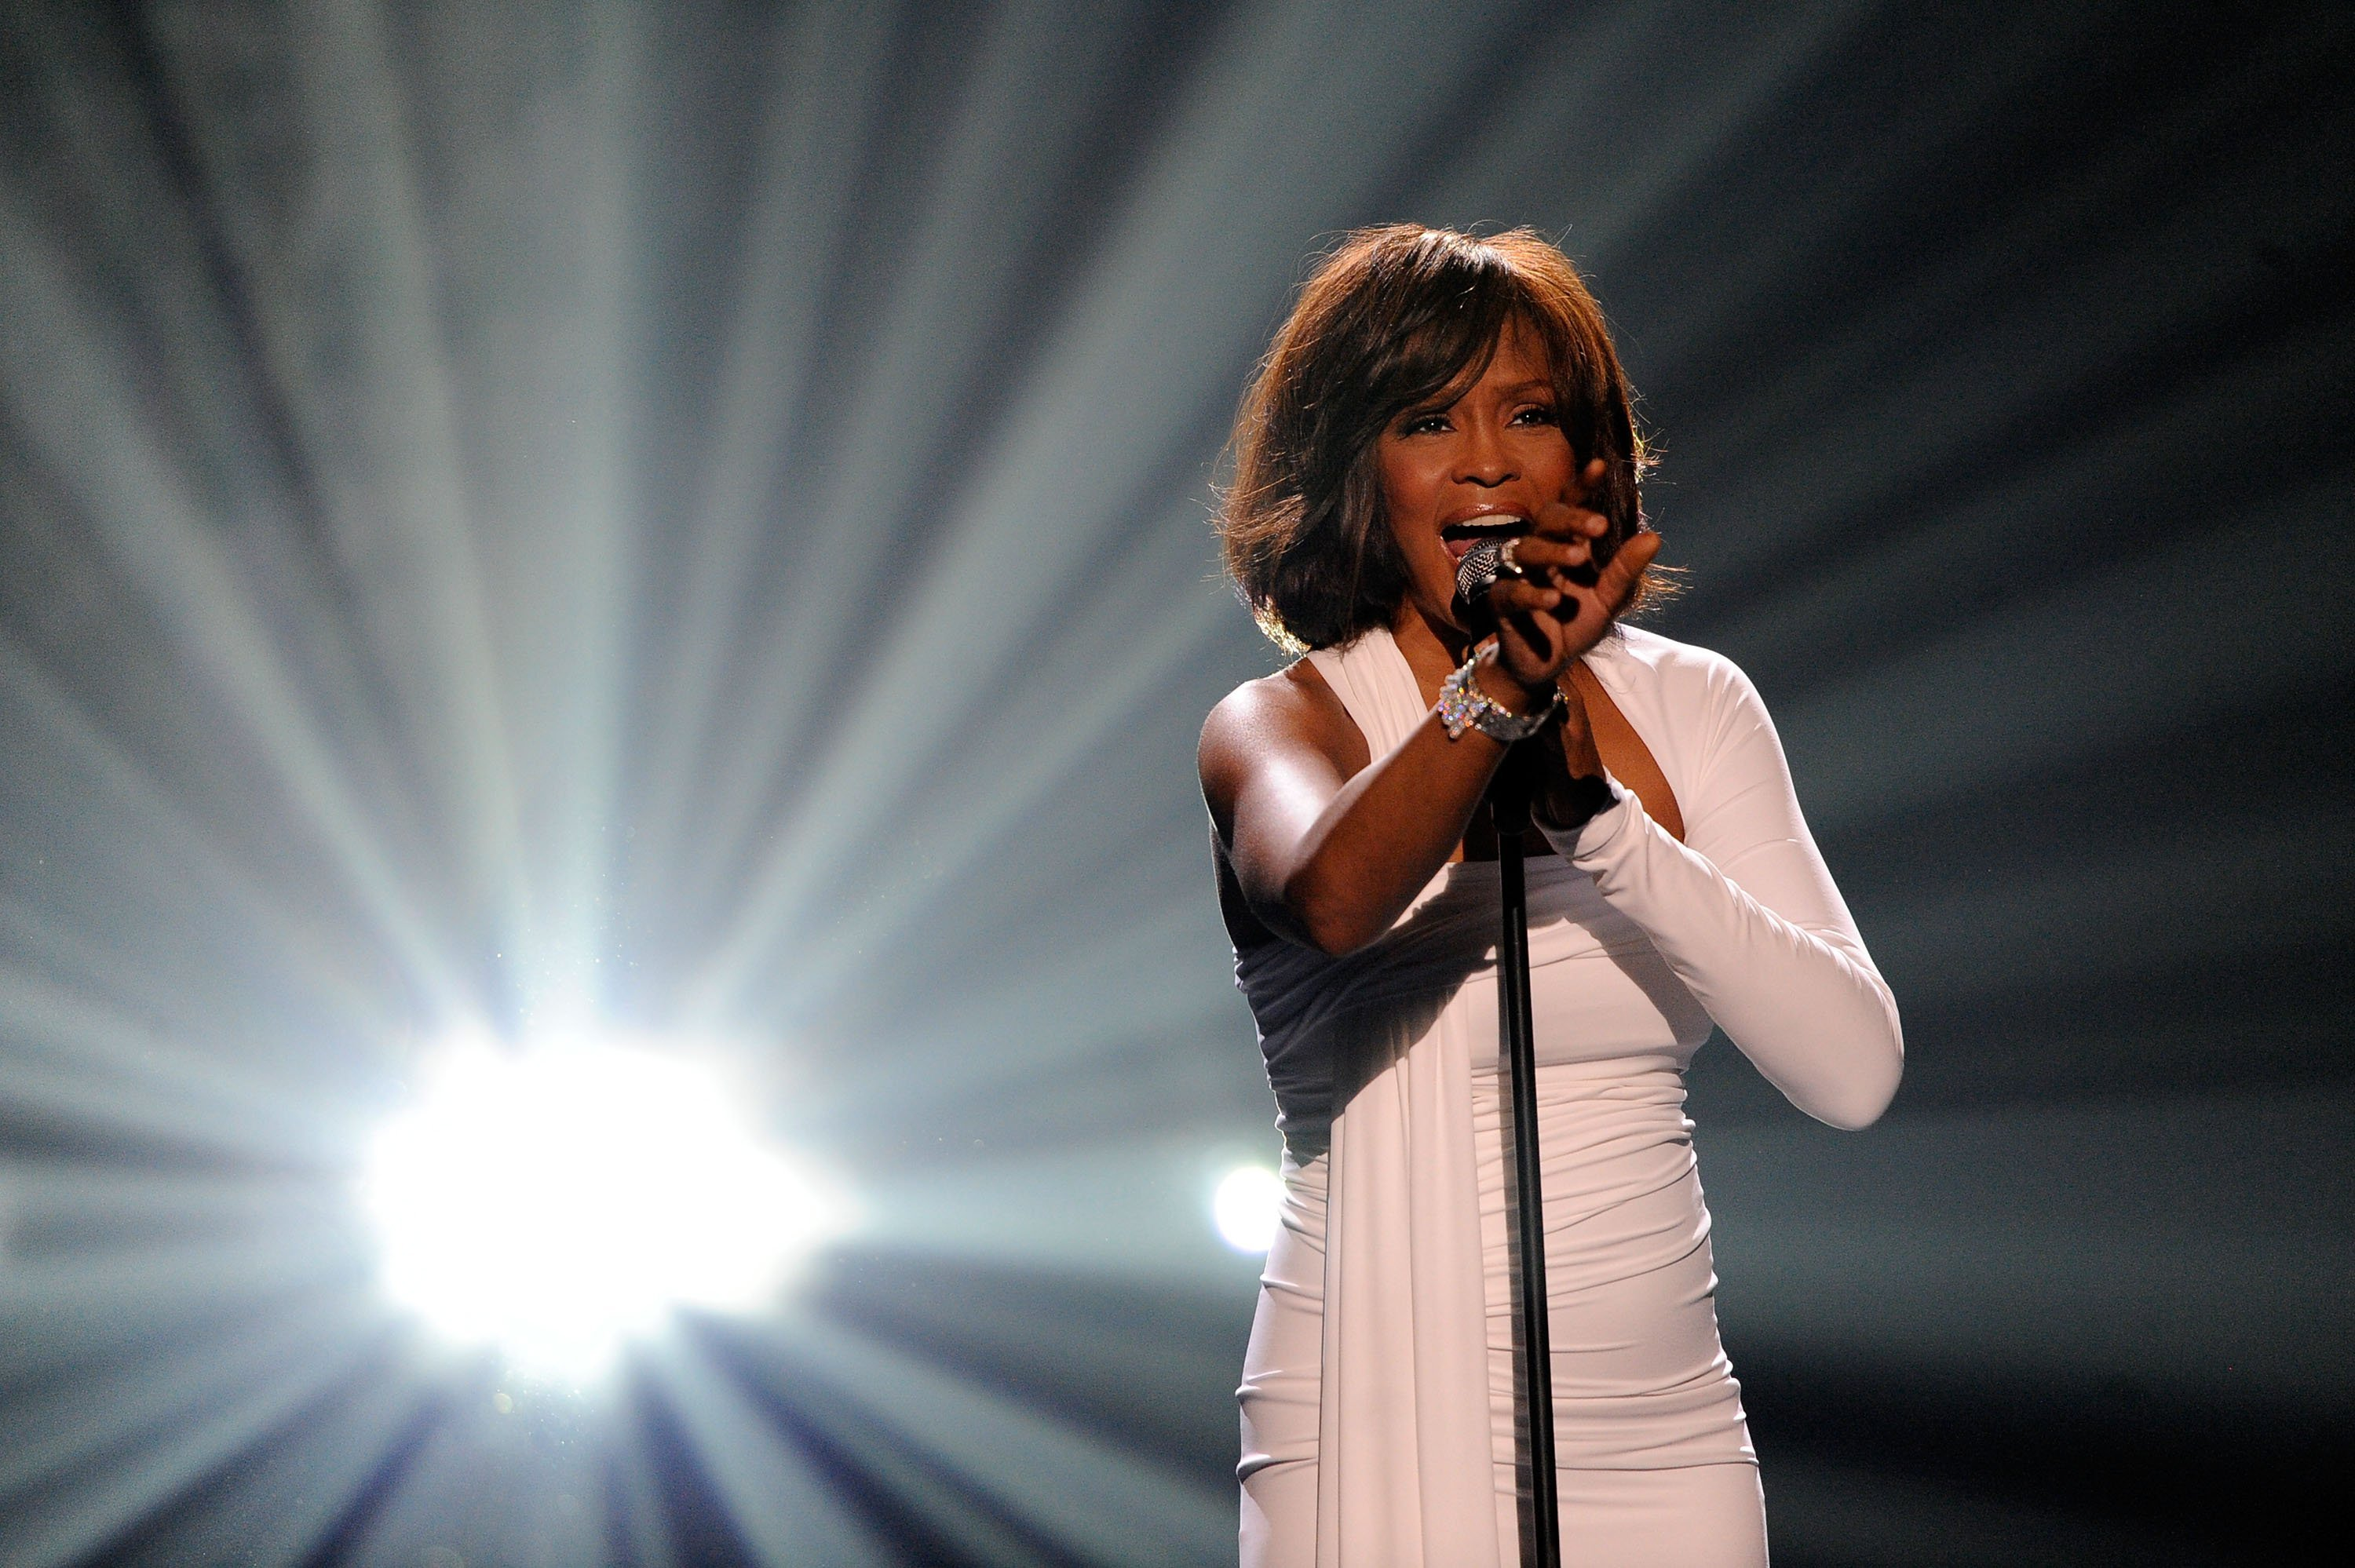 Whitney Houston at the 2009 American Music Awards at Nokia Theatre L.A on November 22, 2009 | Photo: GettyImages